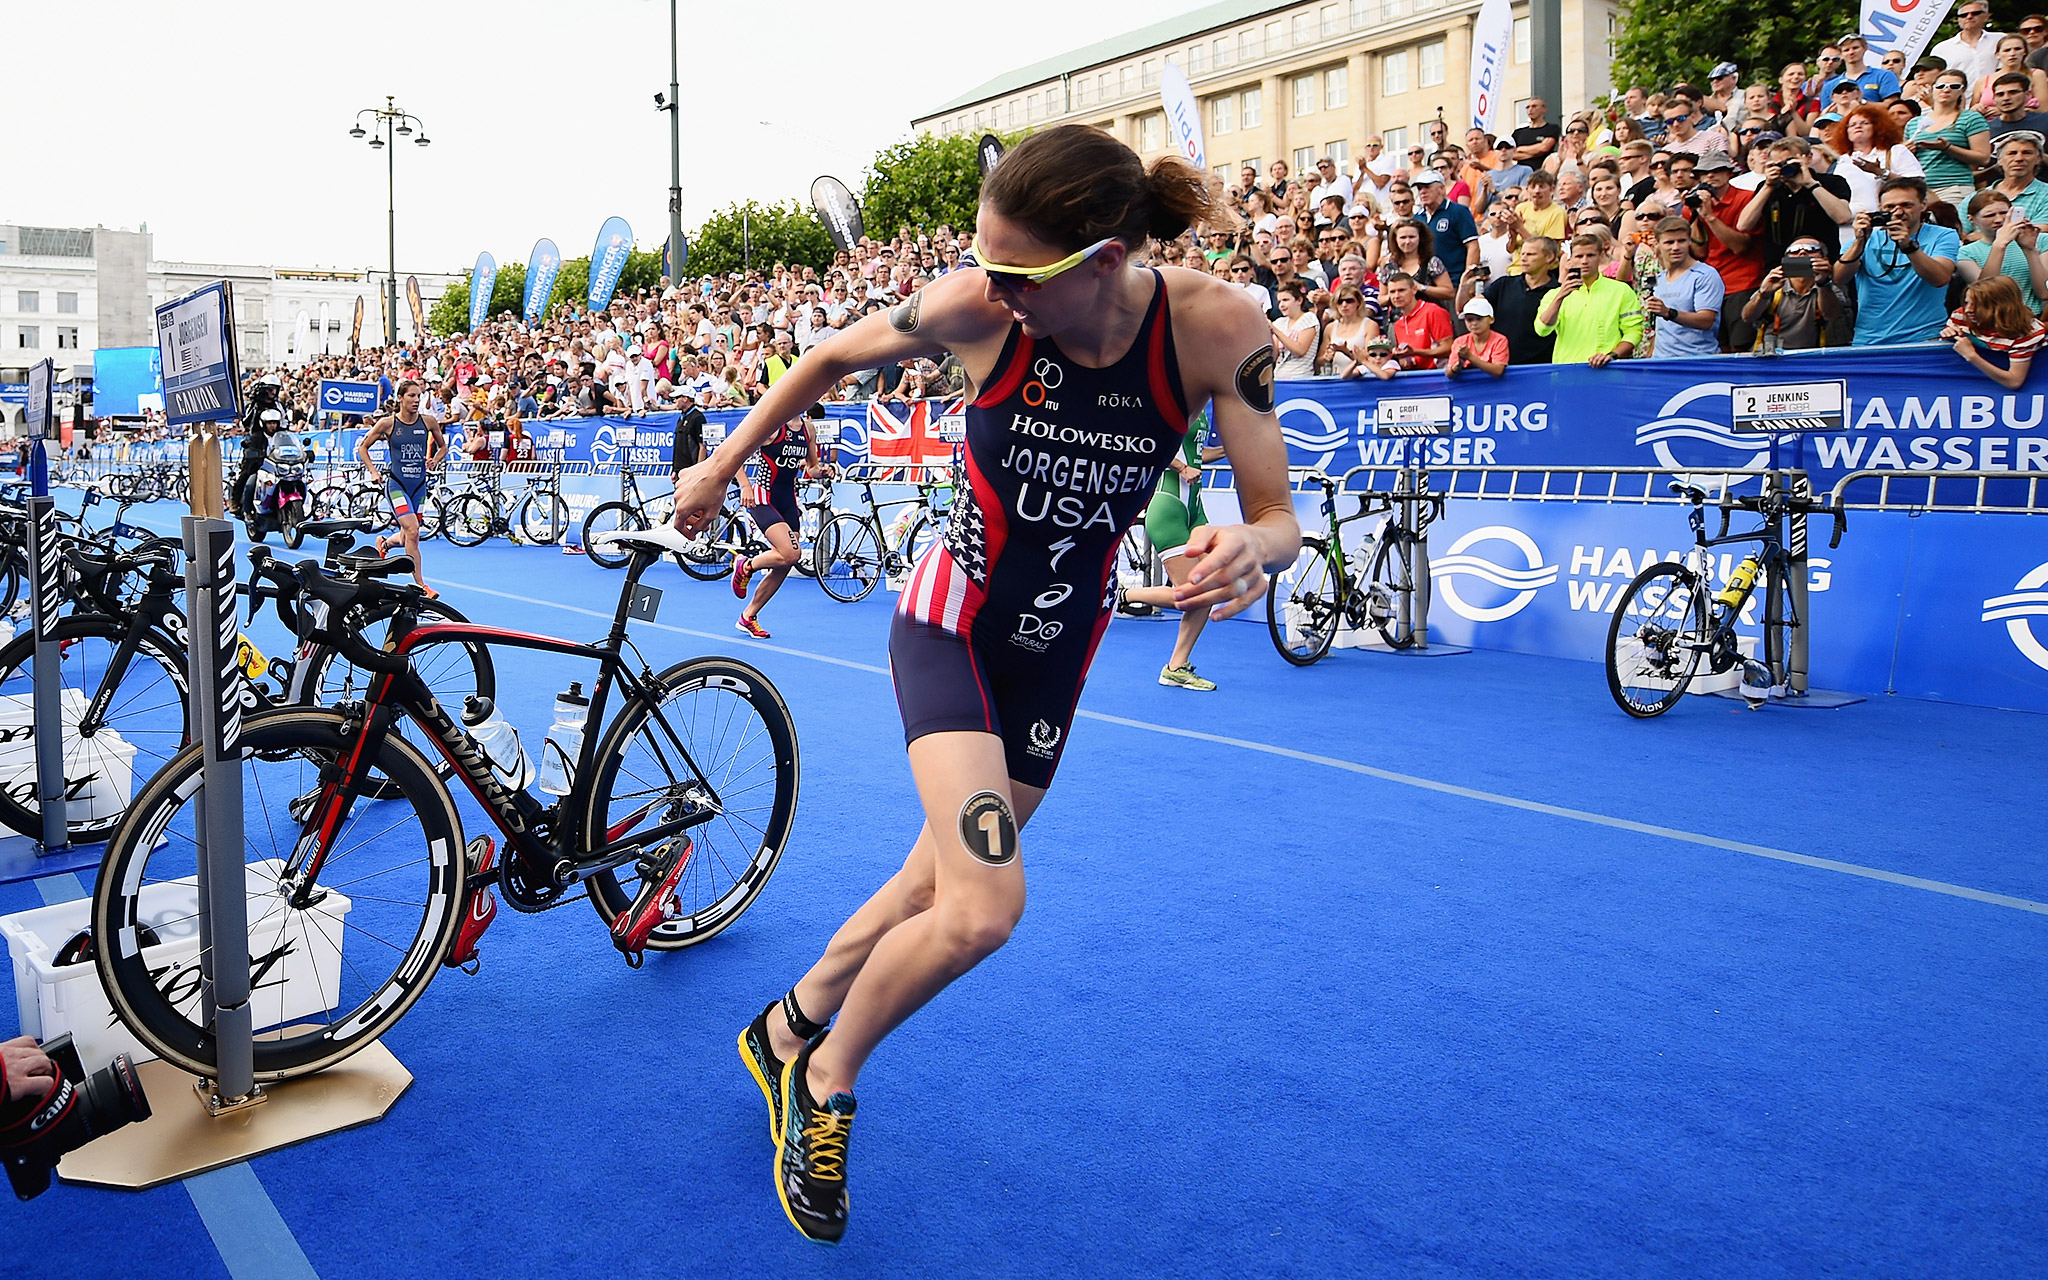 Gwen Jorgensen of the United States runs in the women's ITU World Triathlon sprint event in Hamburg, Germany.